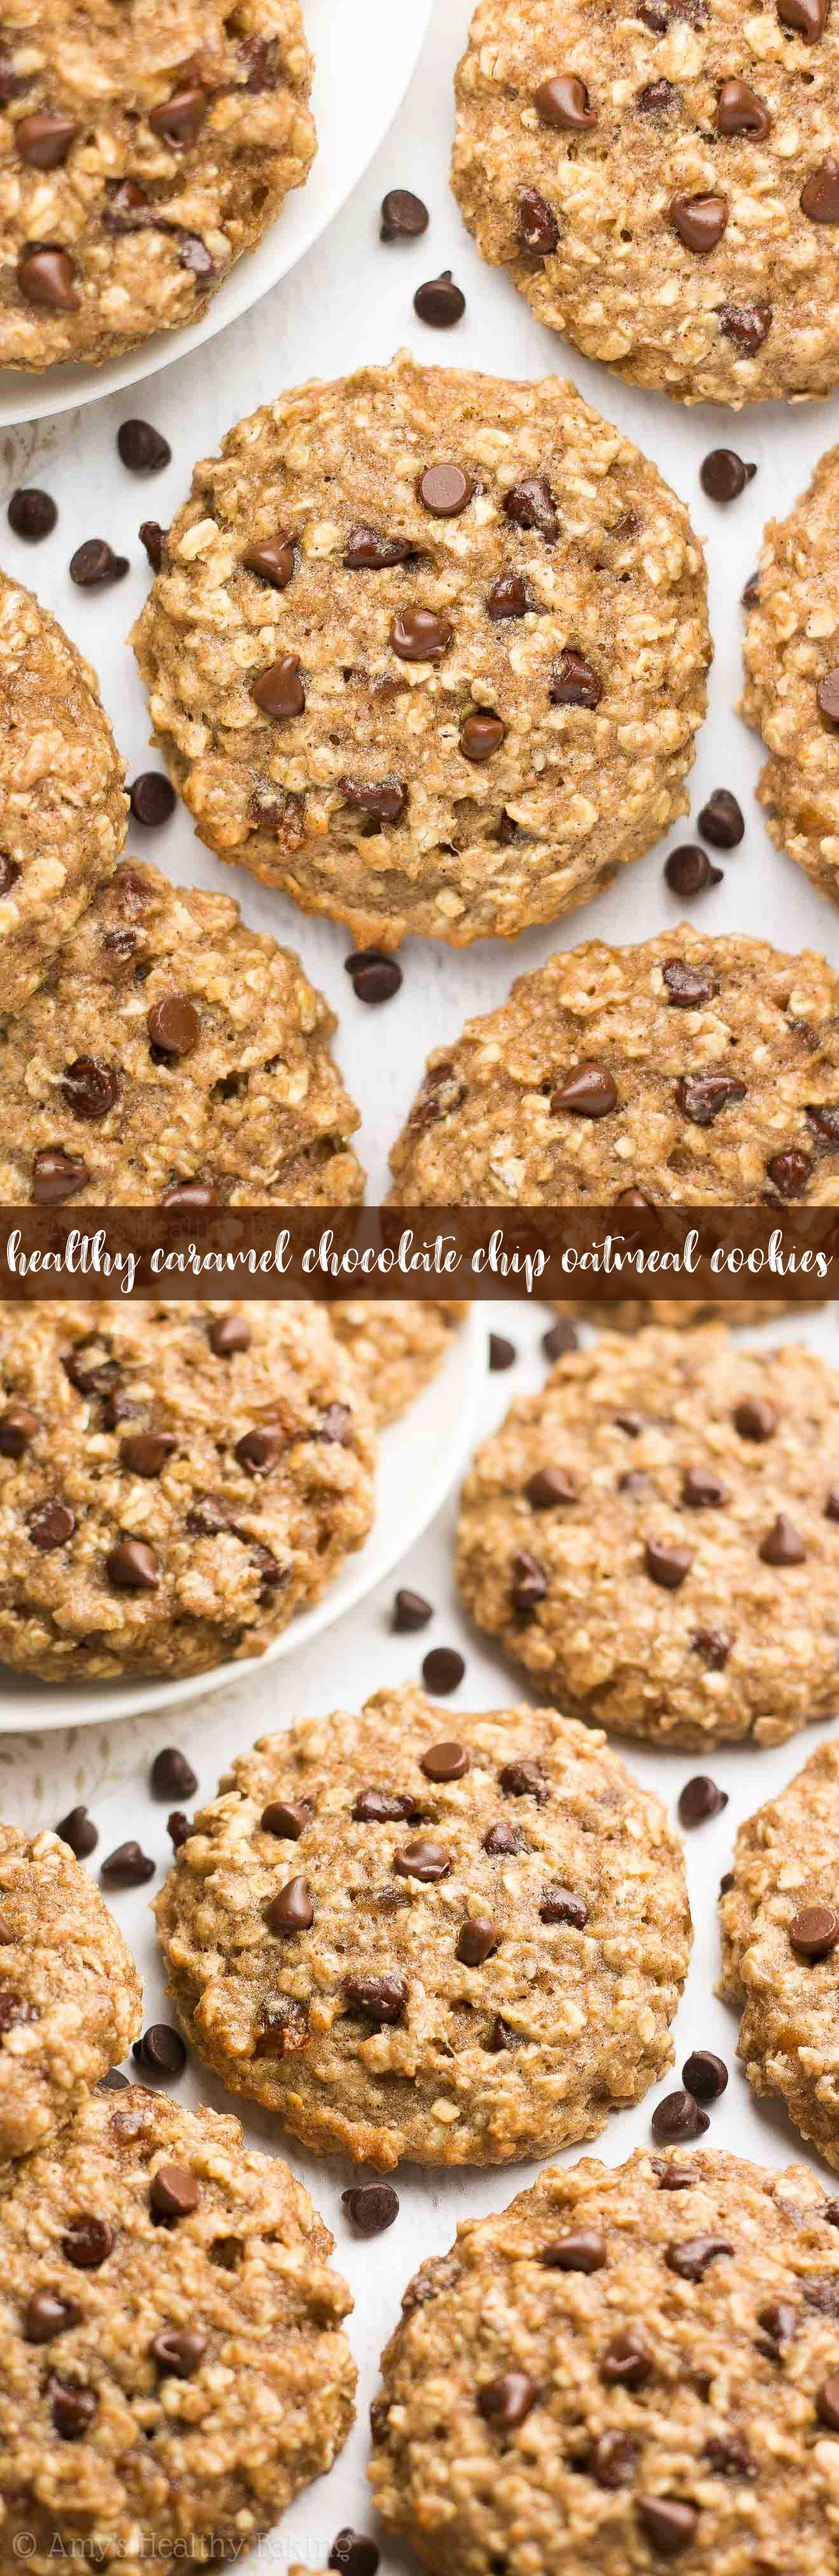 Healthy Chocolate Chip Oatmeal Cookies  Healthy Caramel Chocolate Chip Oatmeal Cookies